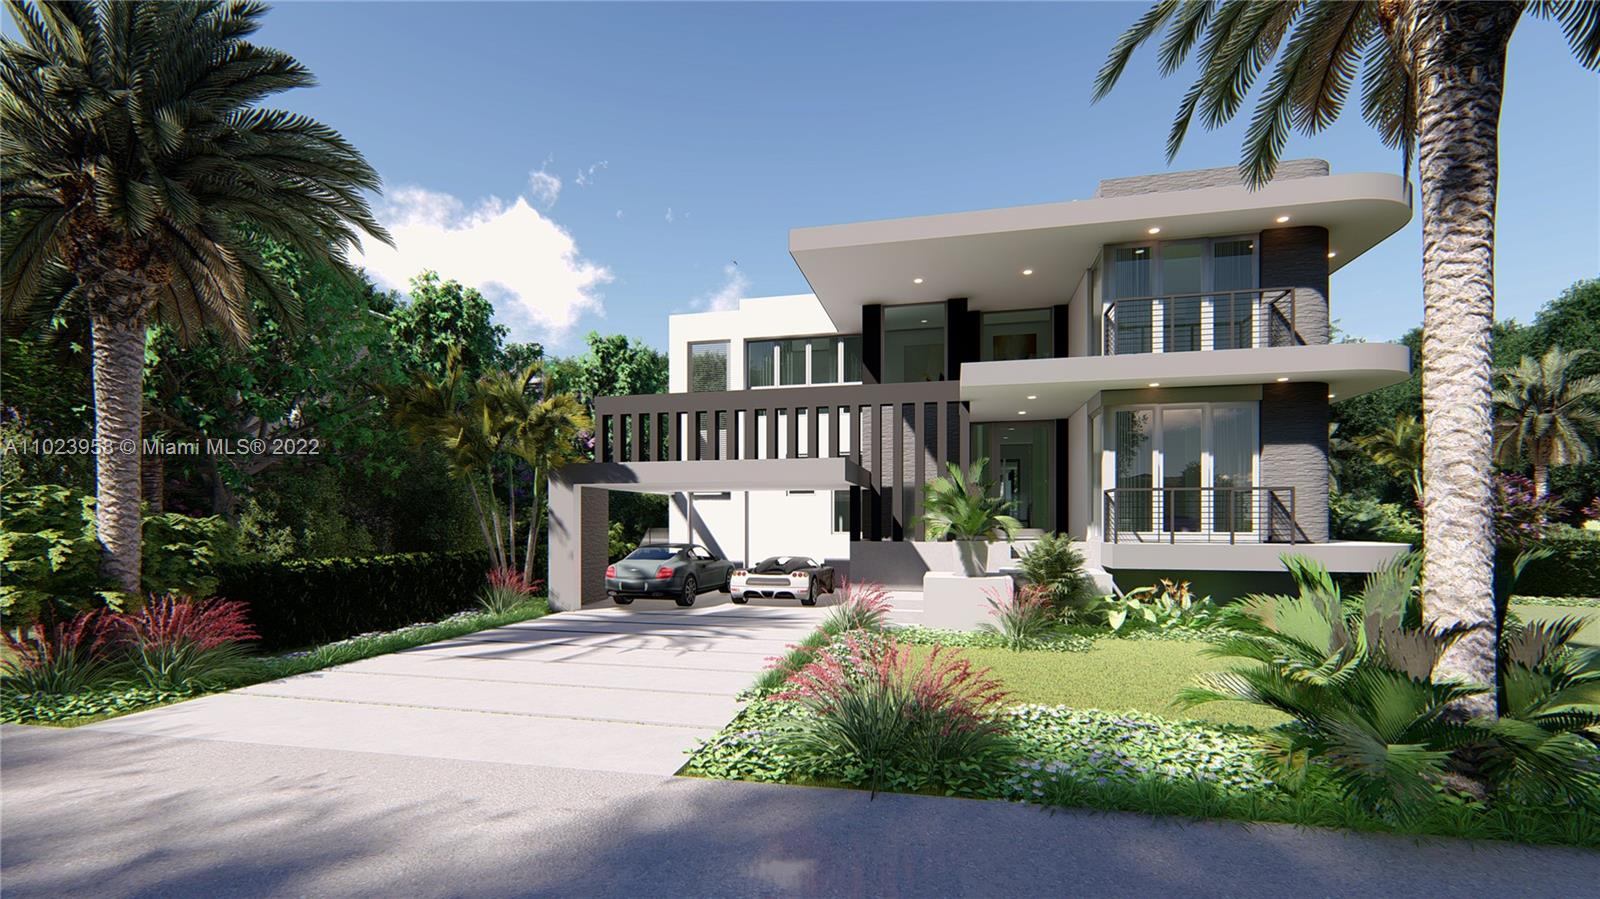 Put your signature touch on this exceptional home, by selecting finishes and colors with the Developer.  Enjoy Island living with a brand new, single family home scheduled for completion in the Summer of 2022. Beautiful finishes will leave you breathless for this contemporary, spacious 5 bd/5ba/2 half bath home located on an oversized corner lot, steps from Key Biscayne's top schools, parks, and commercial centers.  This 4,050 SF (under A/C) home sits on a quiet, residential street with easy access to Harbor Drive.  The open floor plan defines luxurious Key living at its best, with a modern Italian kitchen including top of the line appliances, swimming pool with patio, covered terrace with outdoor summer kitchen, impact windows/doors, and large carport. Call now for additional information.